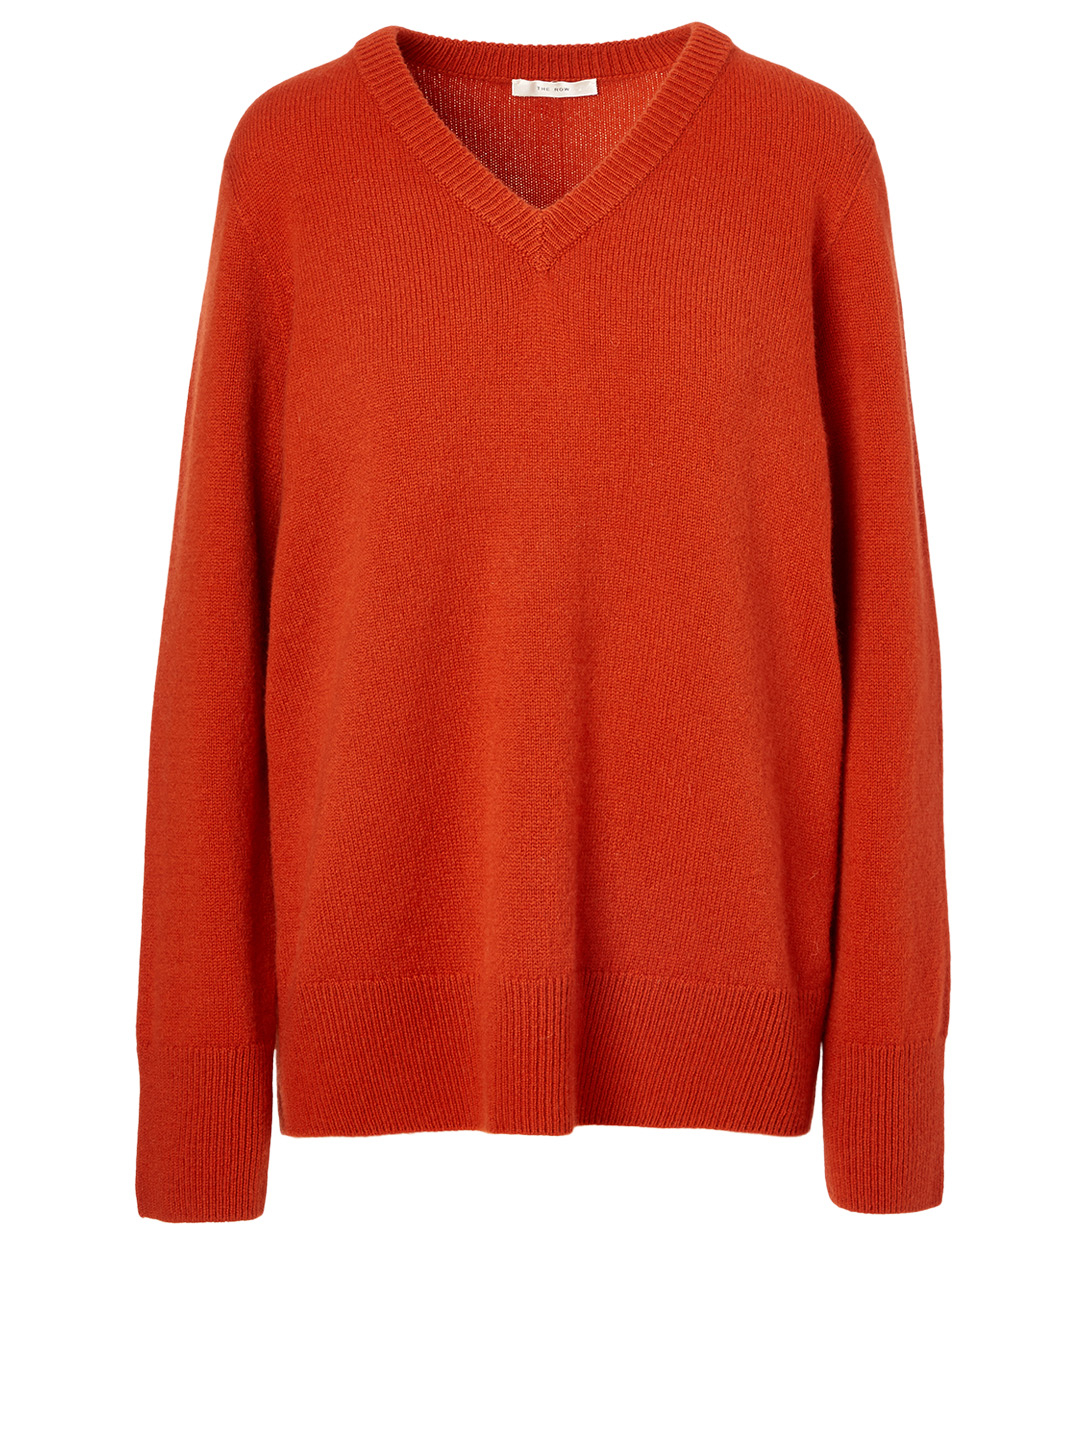 THE ROW Elaine Wool And Cashmere Top Women's Orange